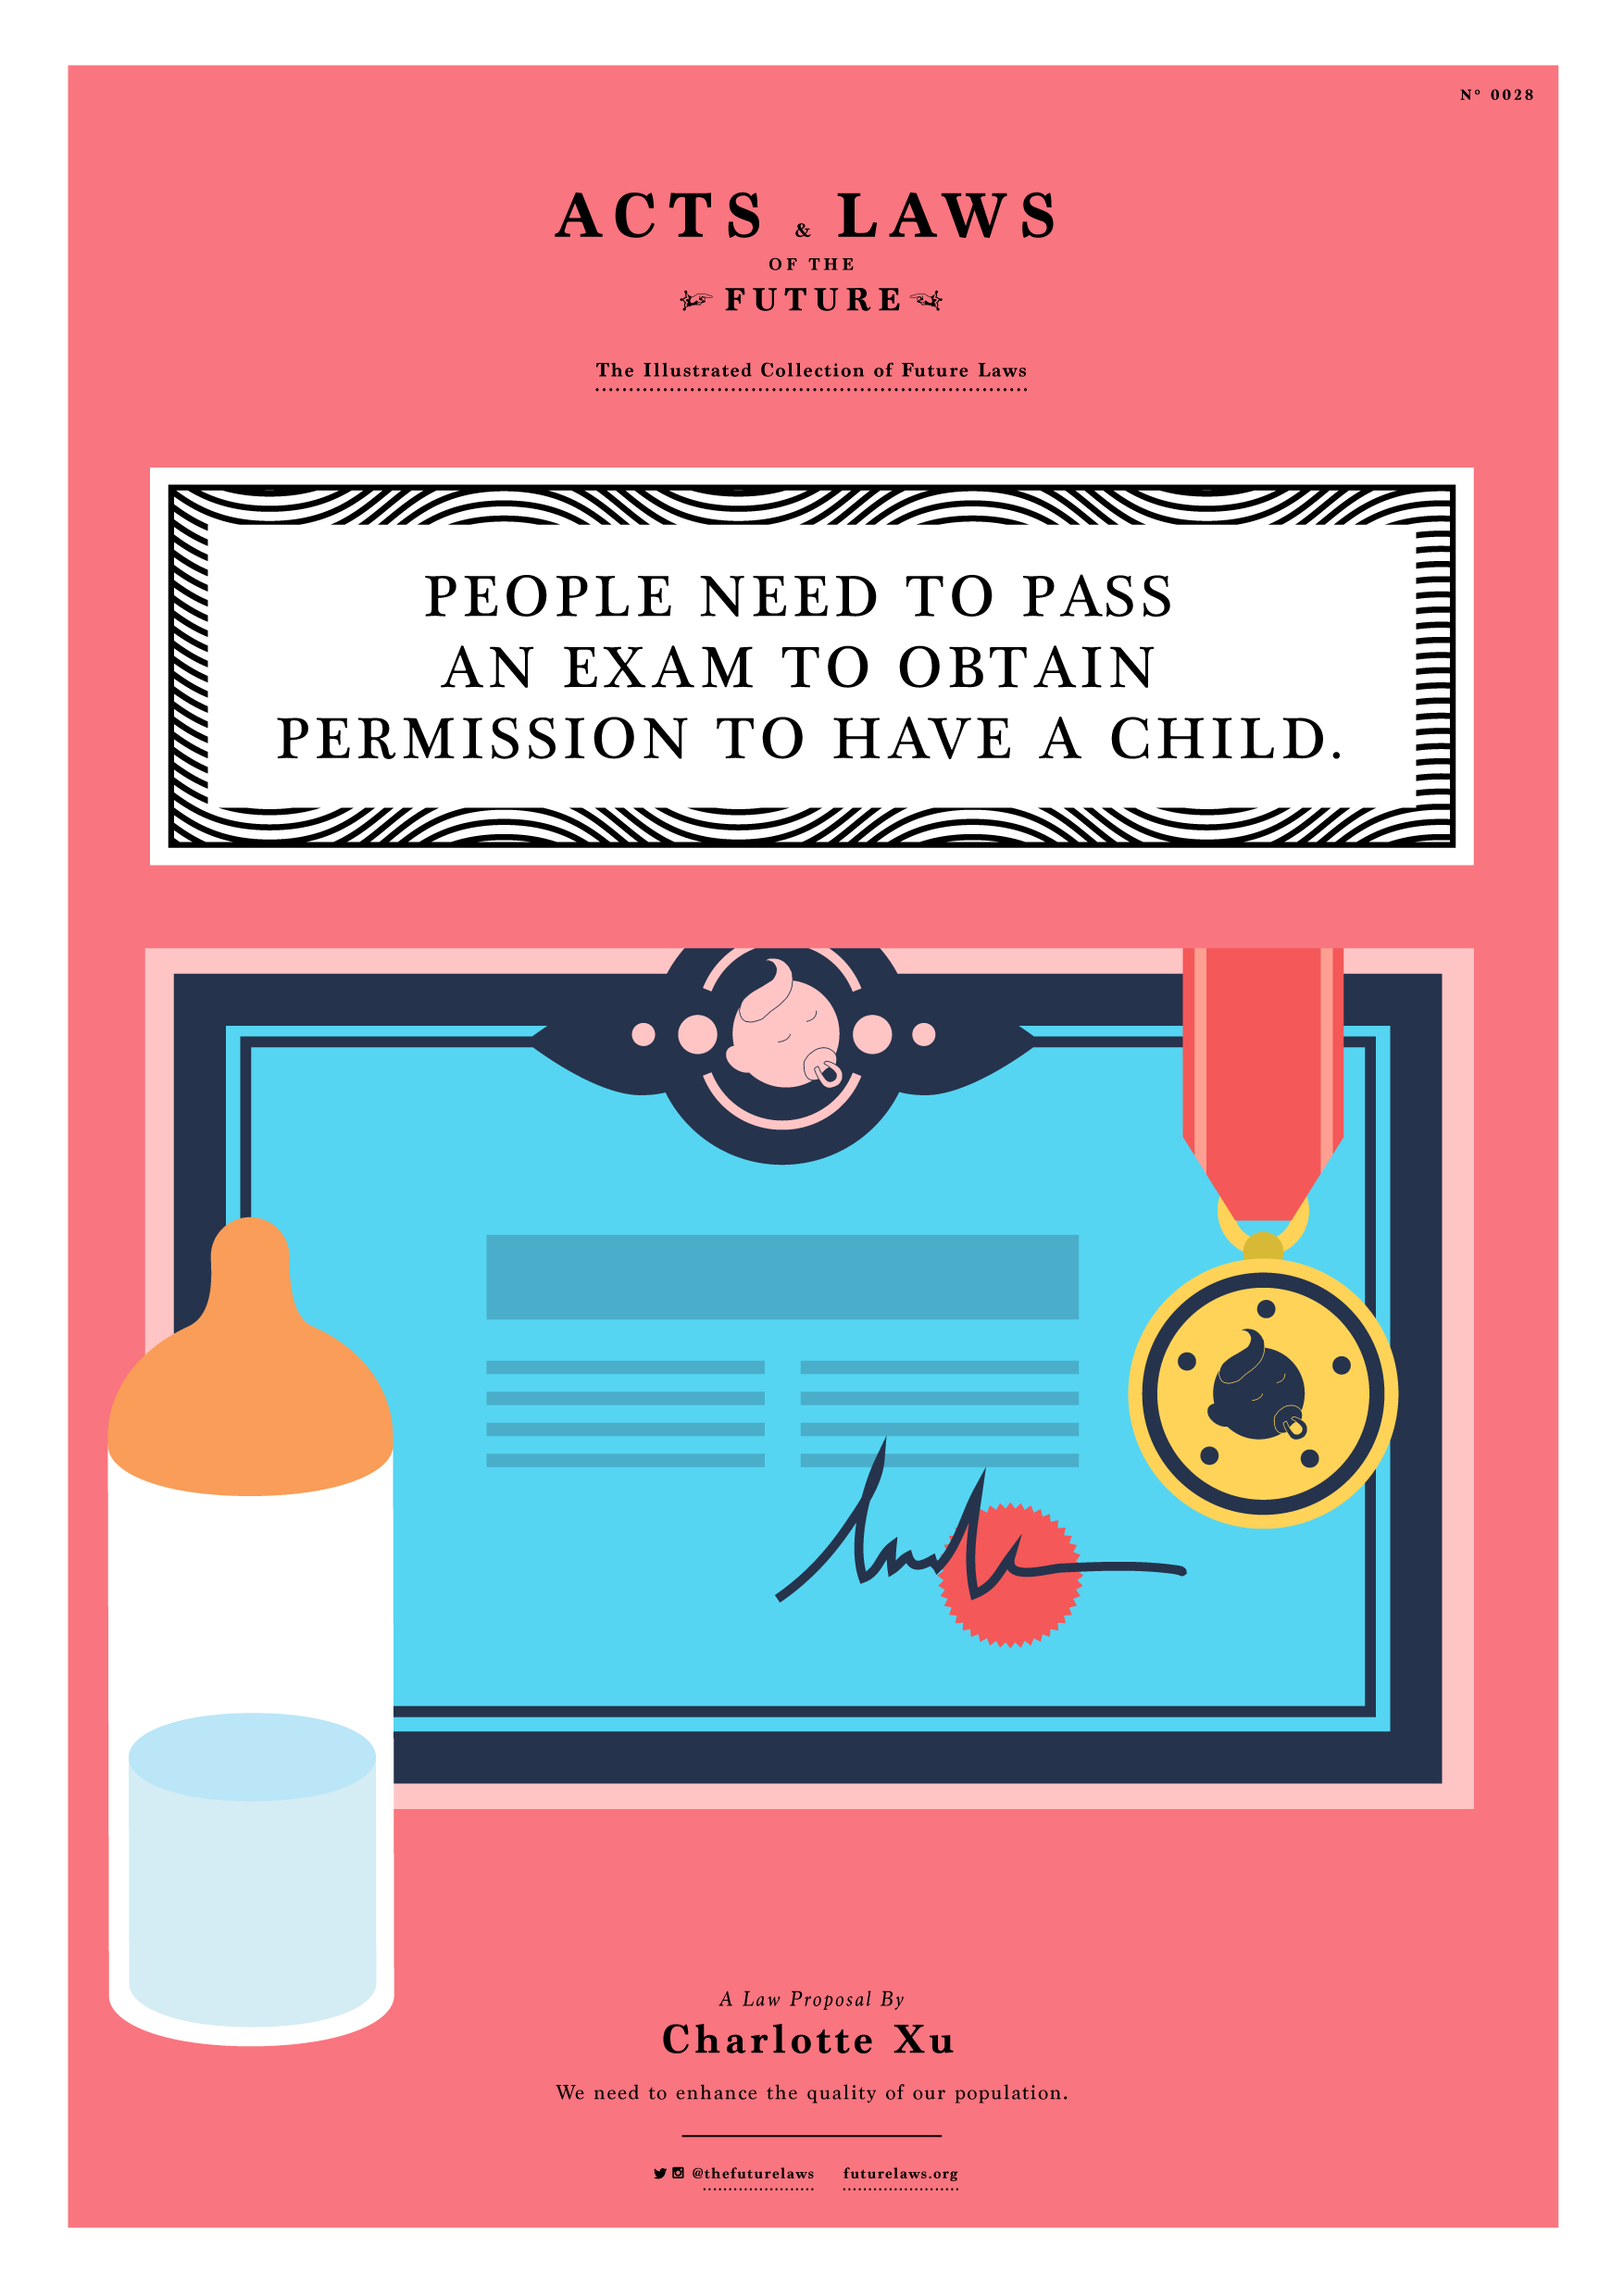 People need to pass an exam to obtain permission to have a child.